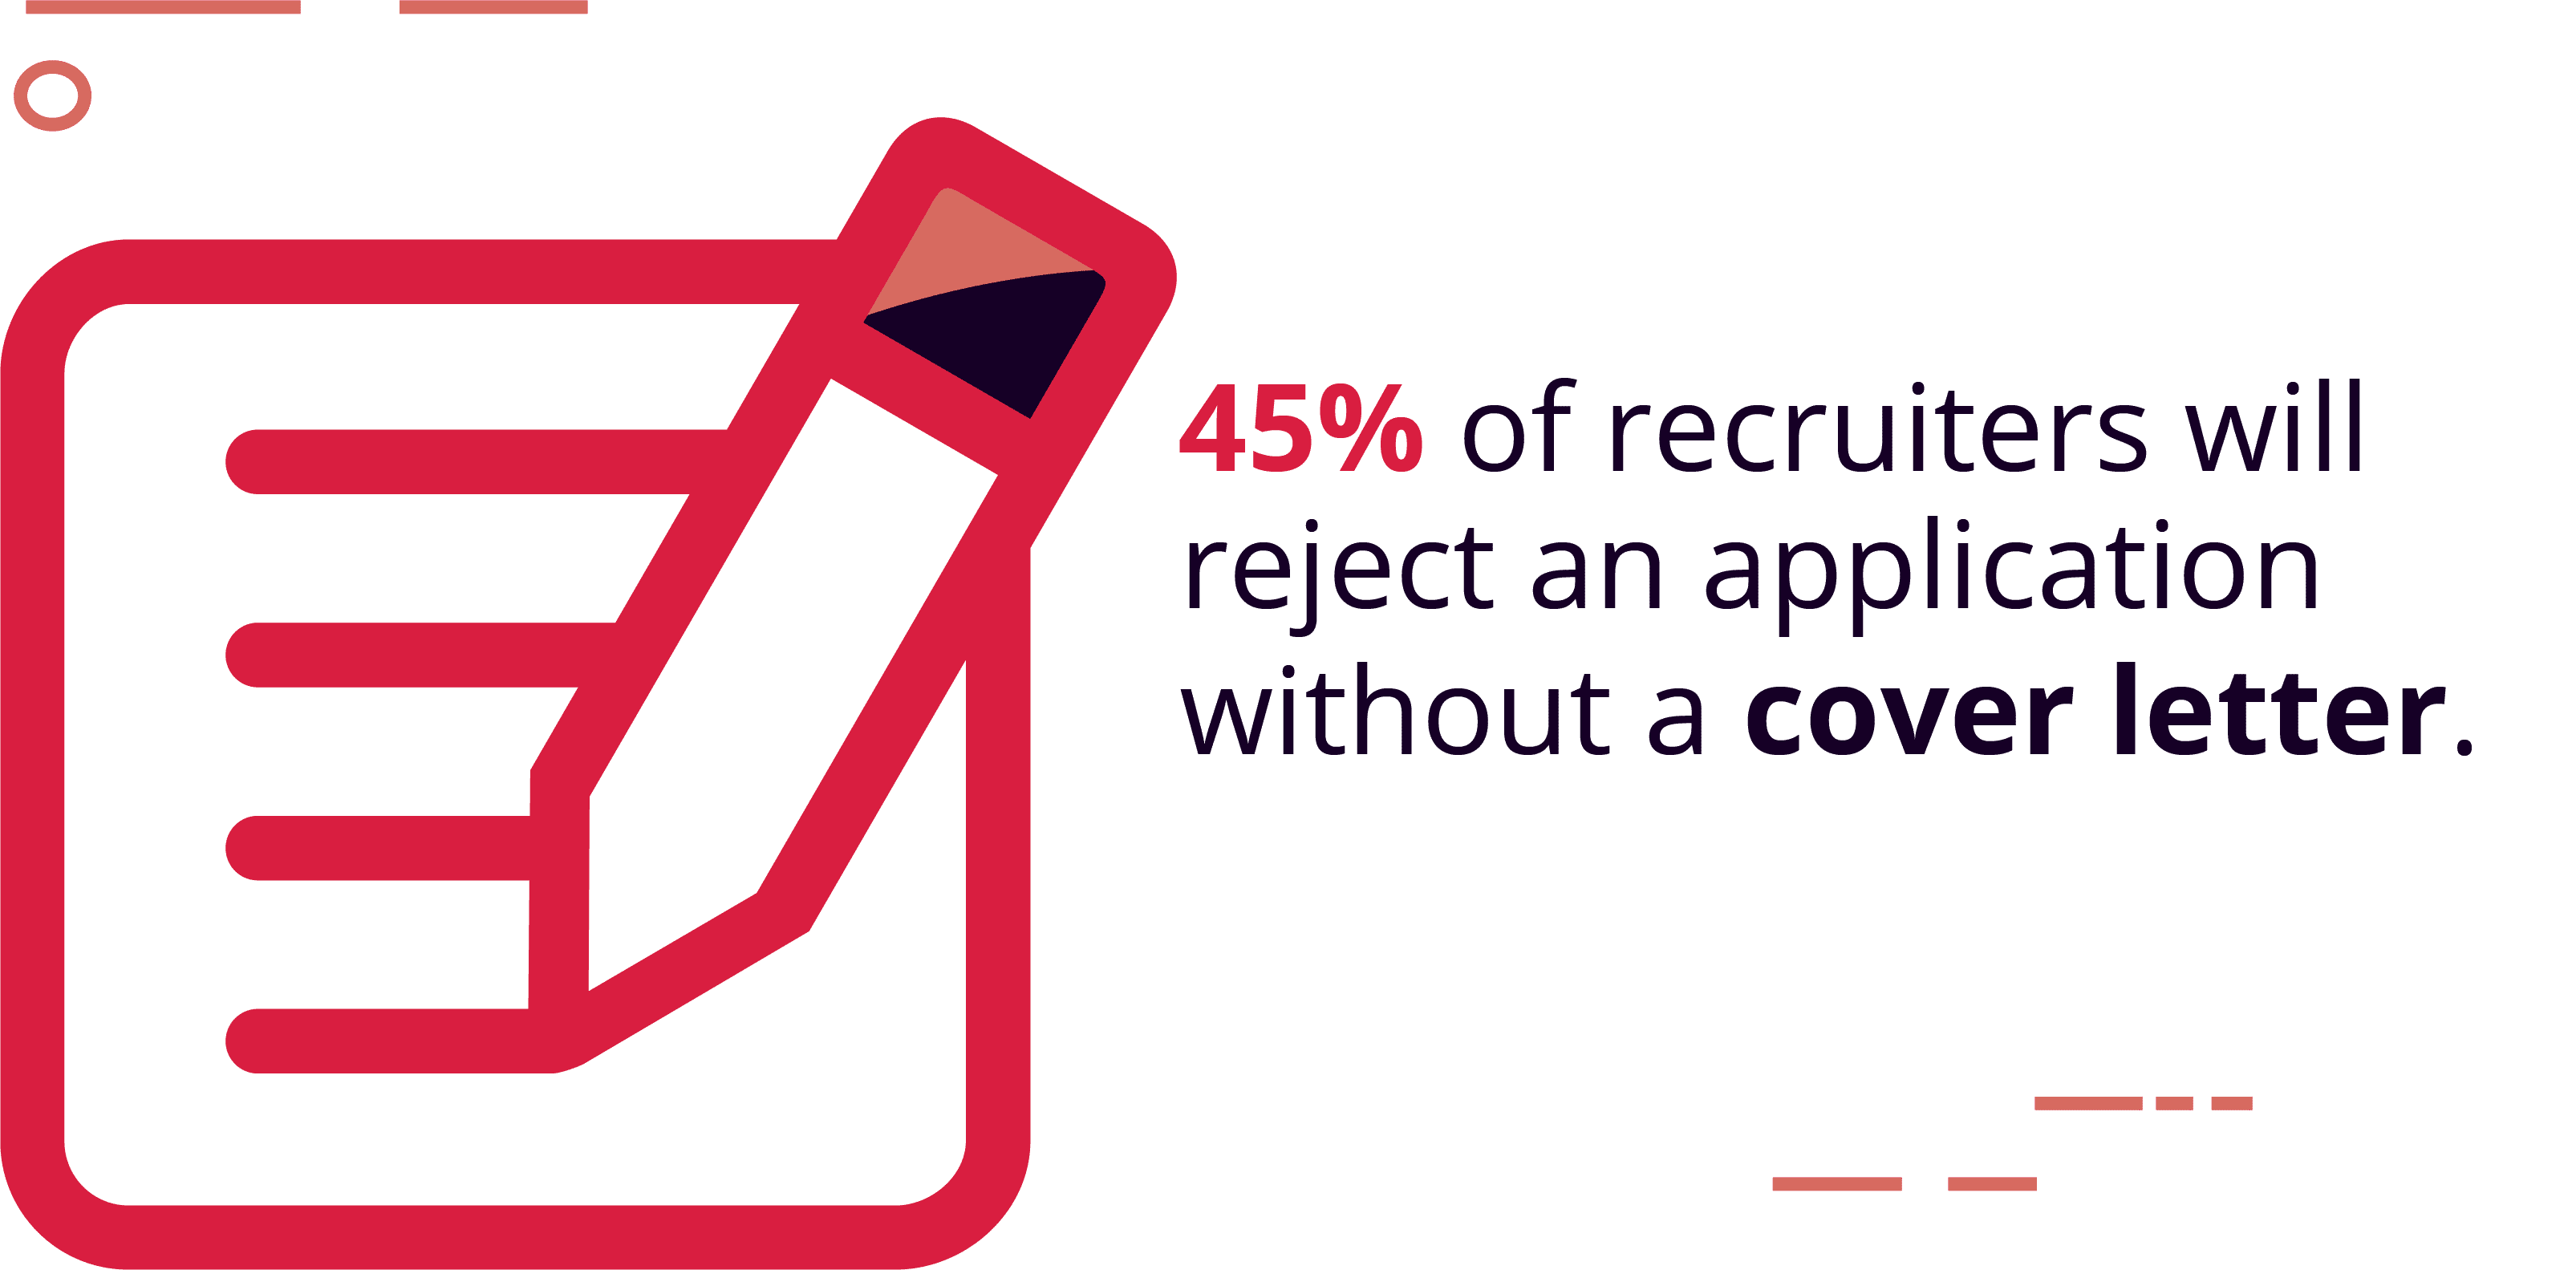 45% of Recruiters Say They Will Reject an Application If It Doesn't Have a Cover Letter